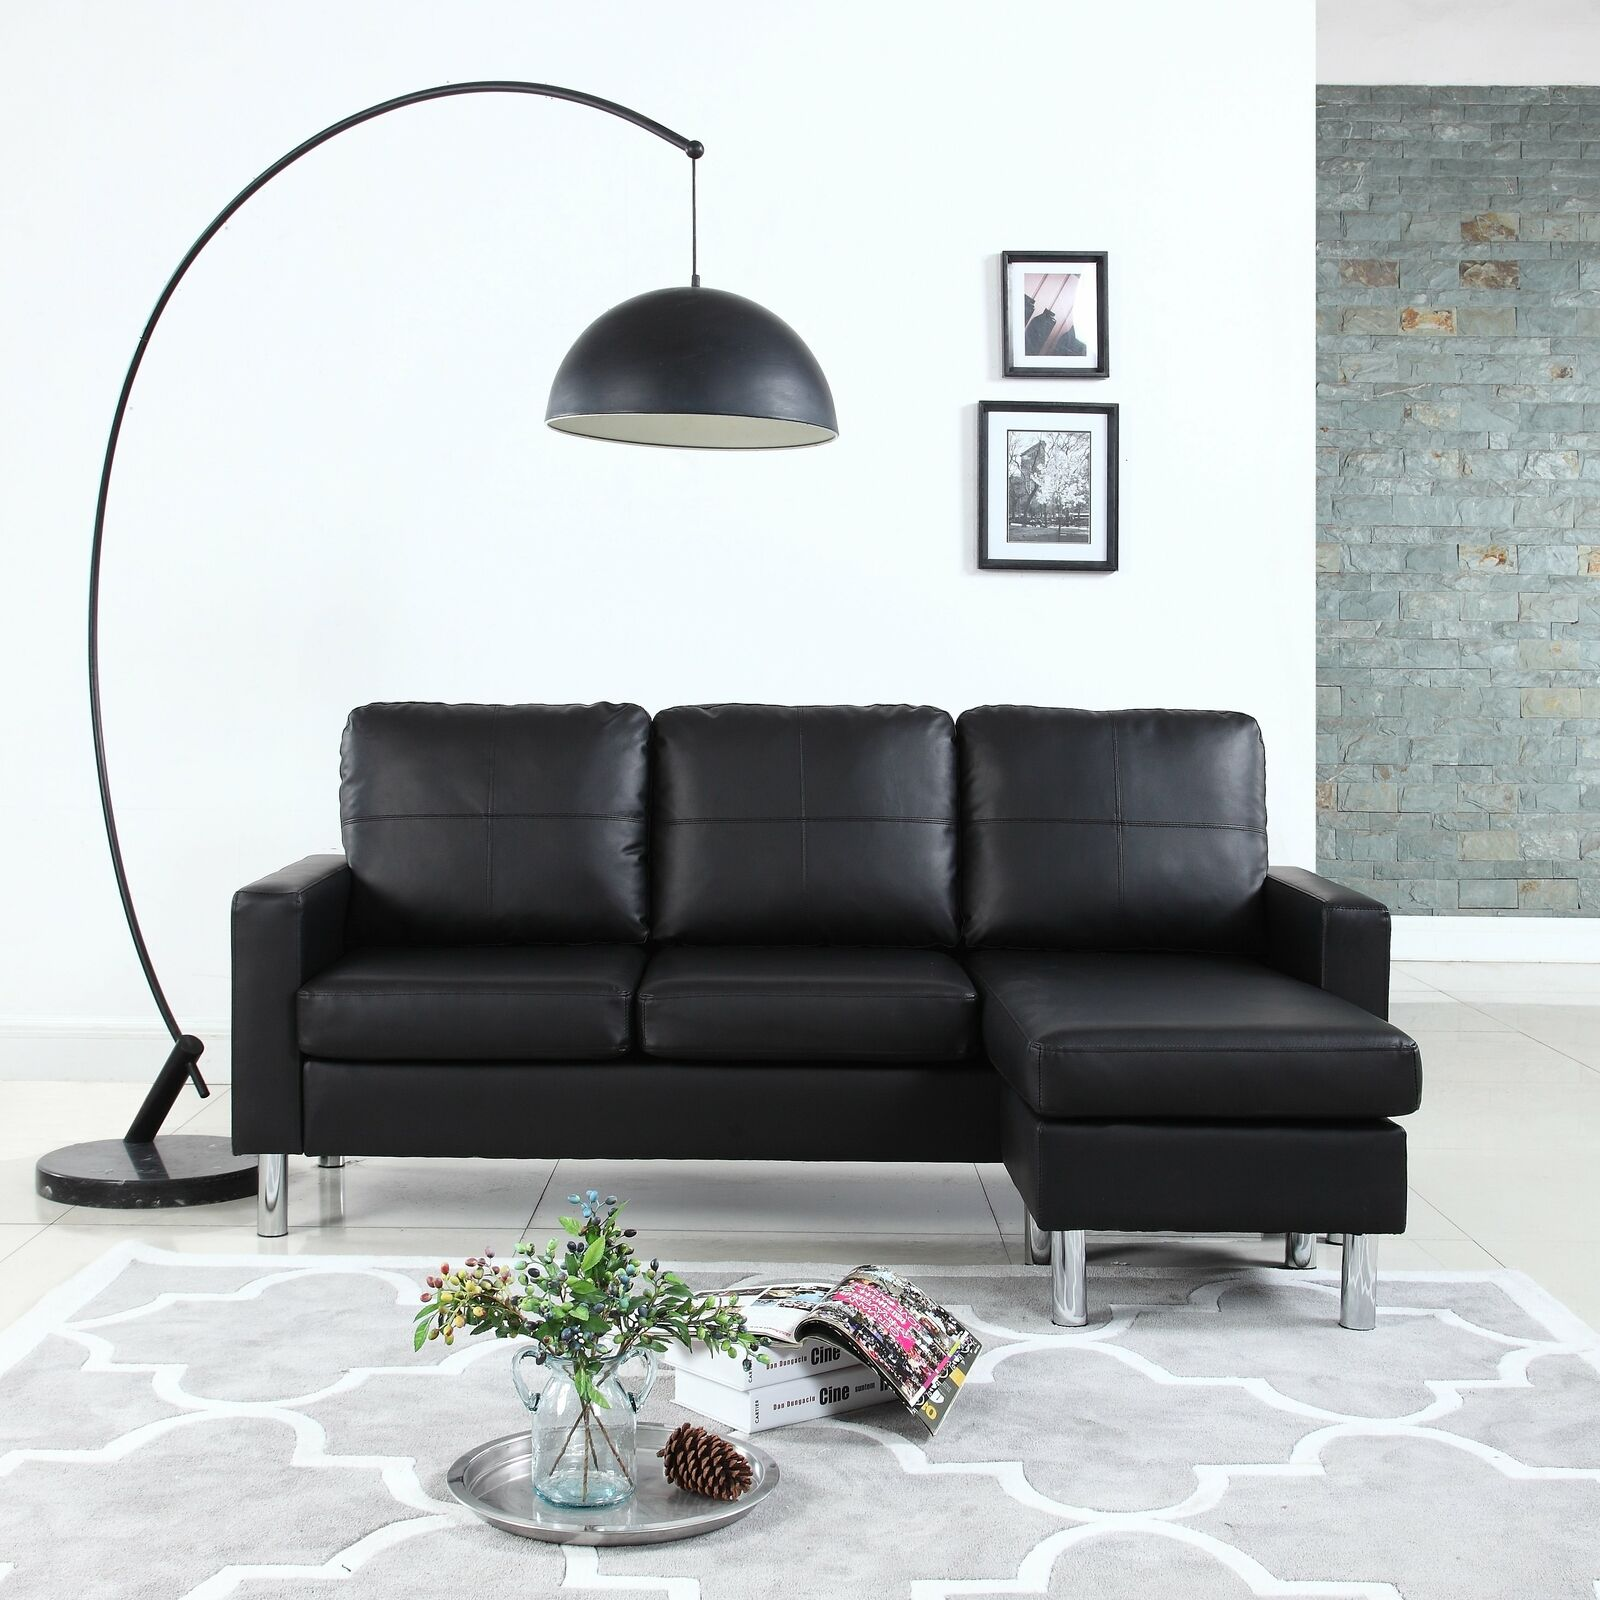 Modern Black And Red Leather Sectional Sofa For Sale Online Ebay